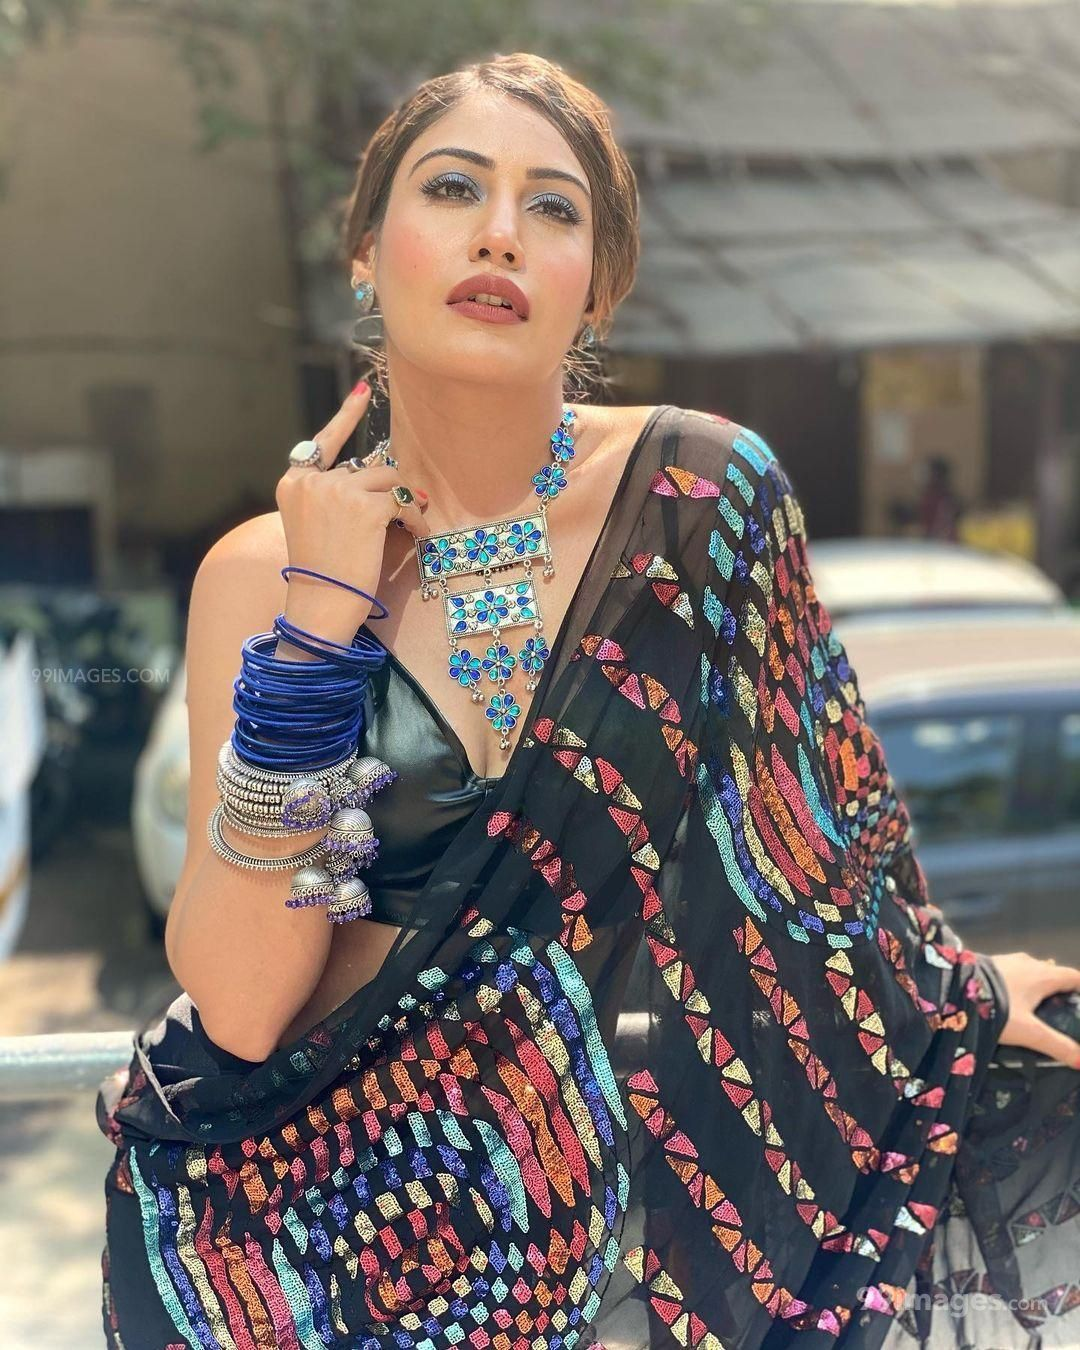 Surbhi Chandna  Hot HD Photos & Wallpapers for mobile Download, WhatsApp DP (1080p) (641081) - Surbhi Chandna